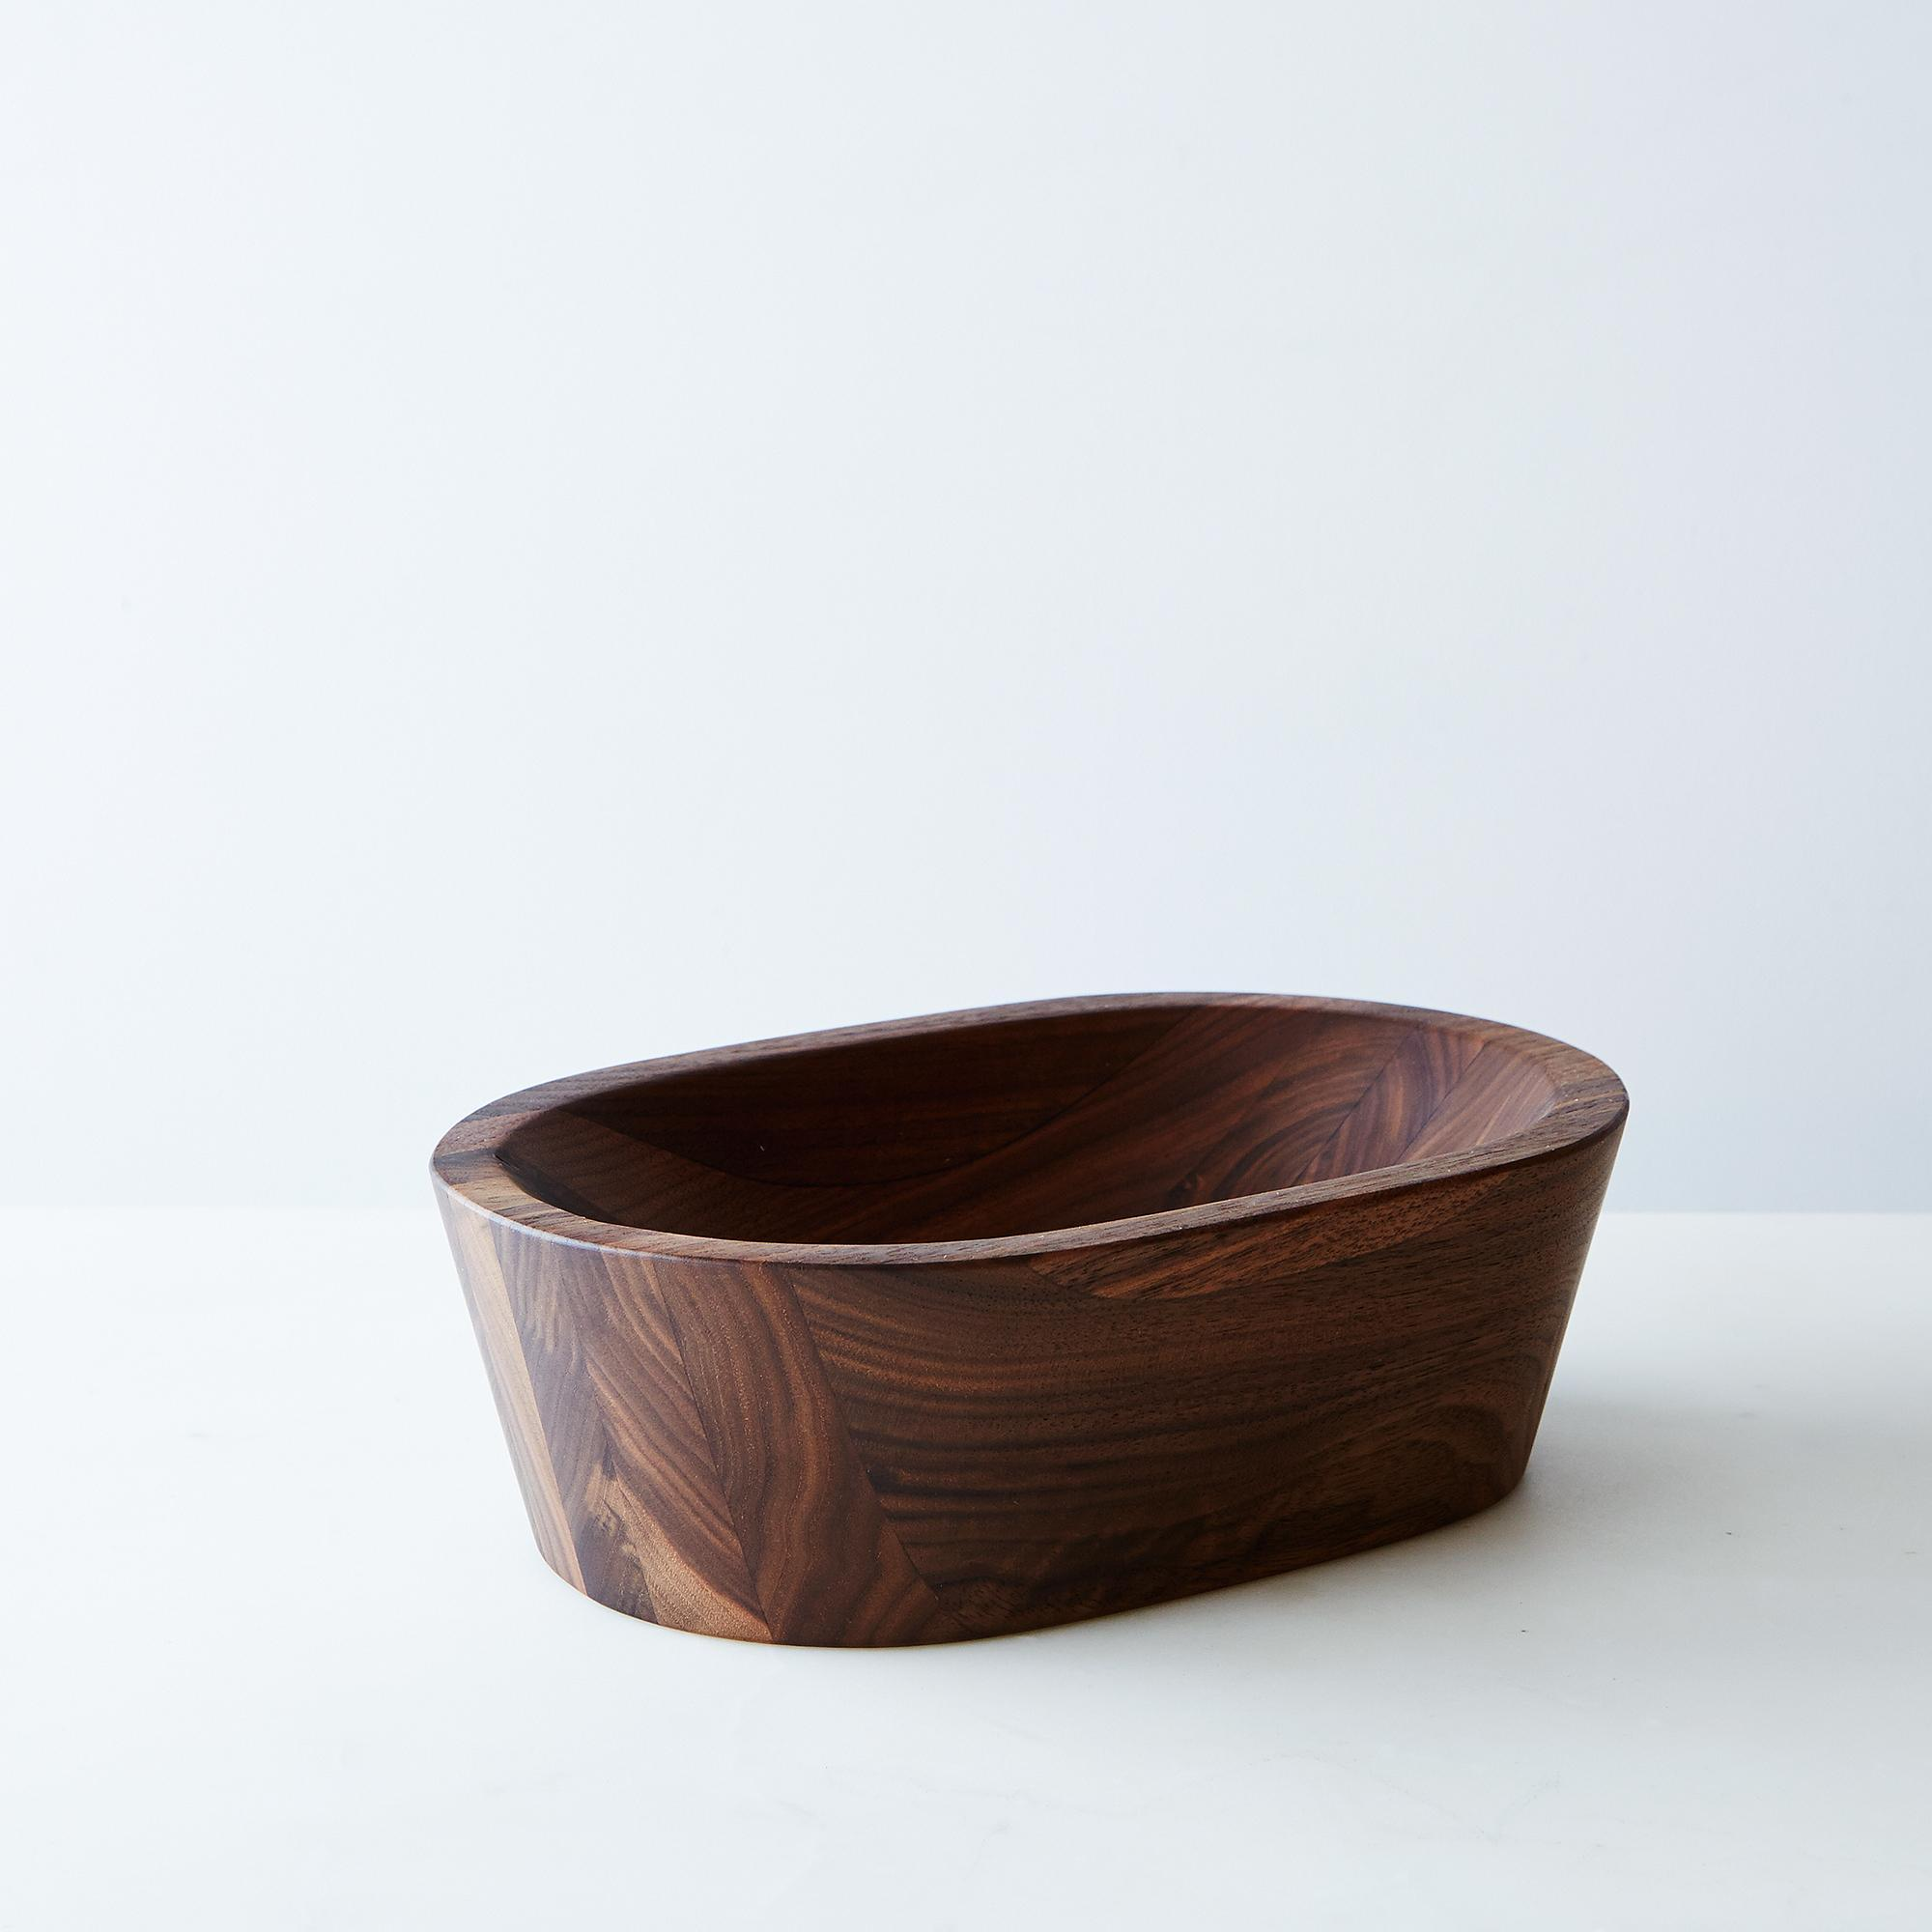 Ce8009be a0f7 11e5 a190 0ef7535729df  2015 0216 garde shop the wooden palate walnut bowl small silo bobbi lin 2976